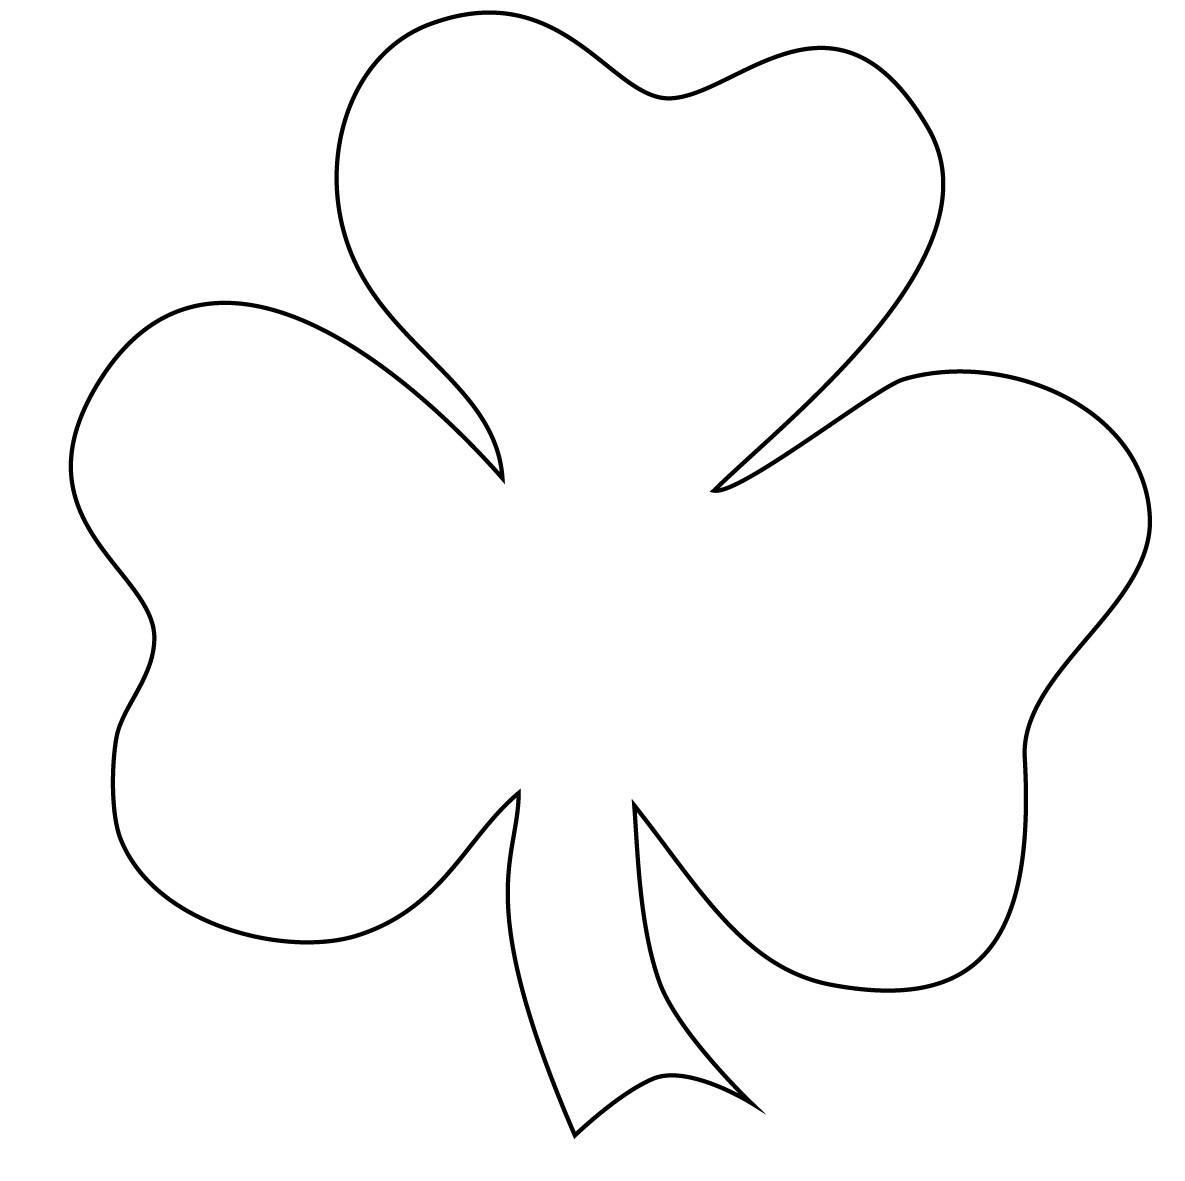 shamrock coloring pages printable - Printable Shamrock Coloring Pages